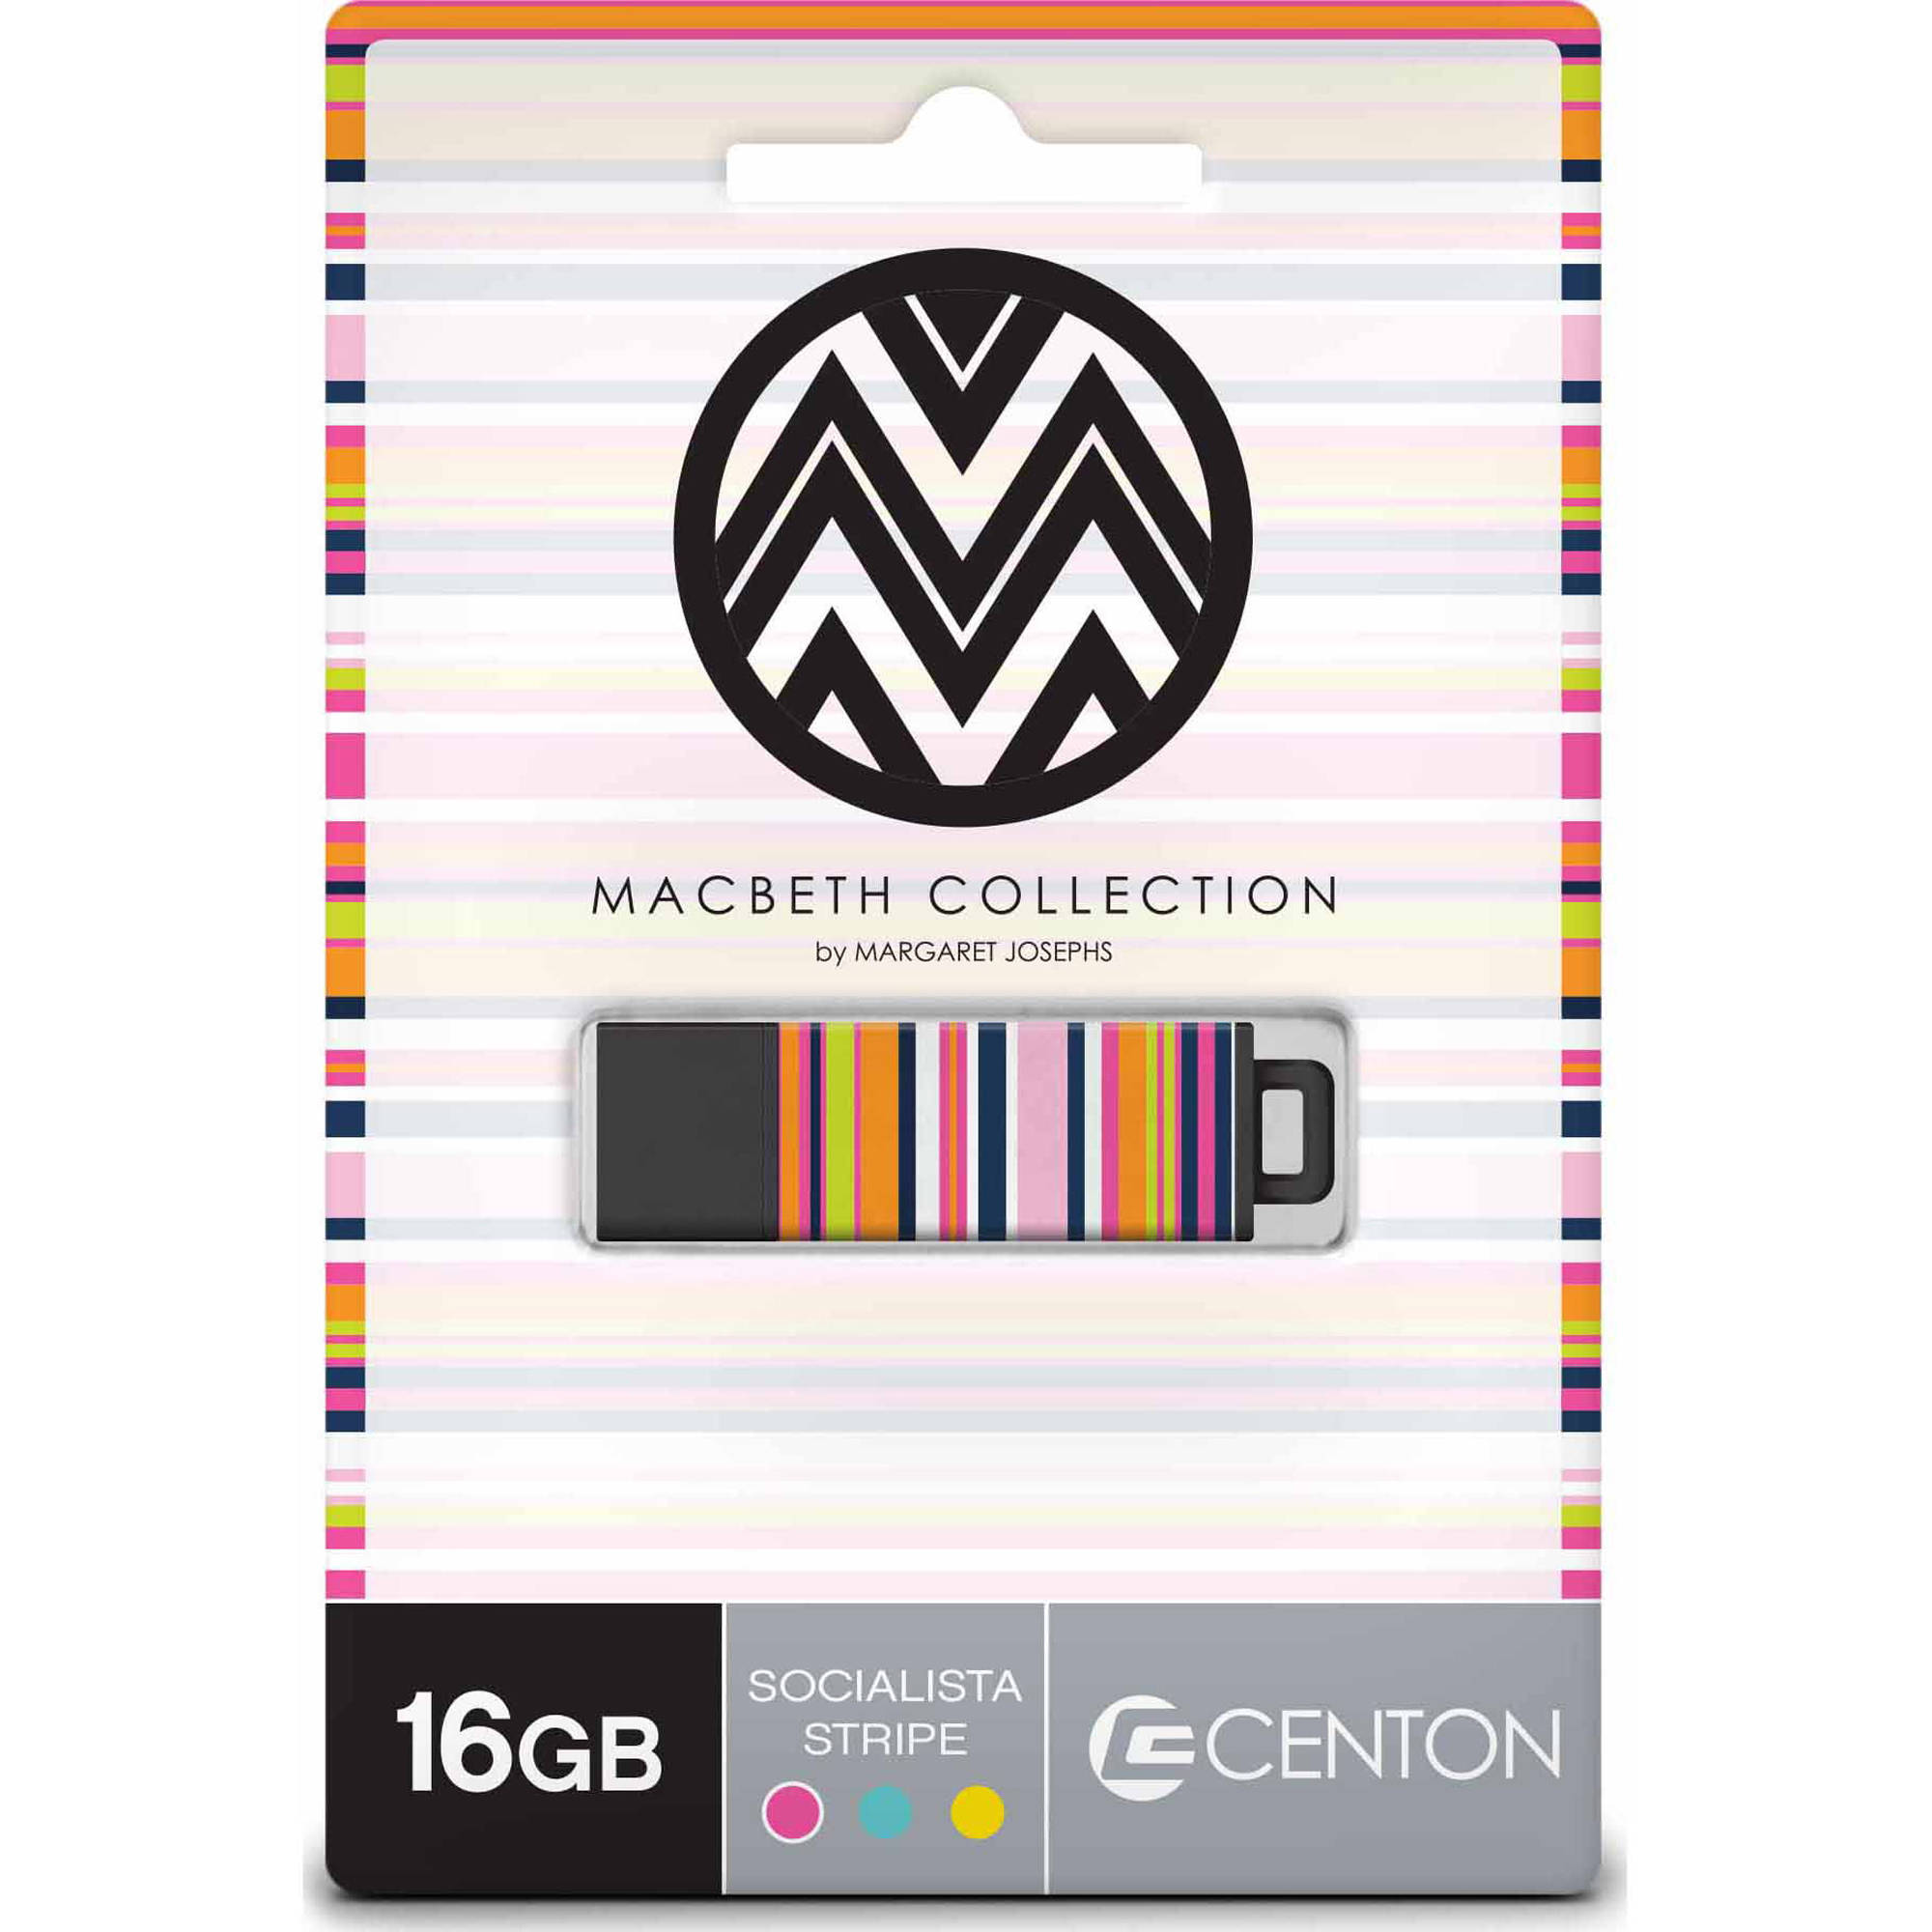 Centon 16GB PRO2 Macbeth USB Flash Drive, Soc Stripe